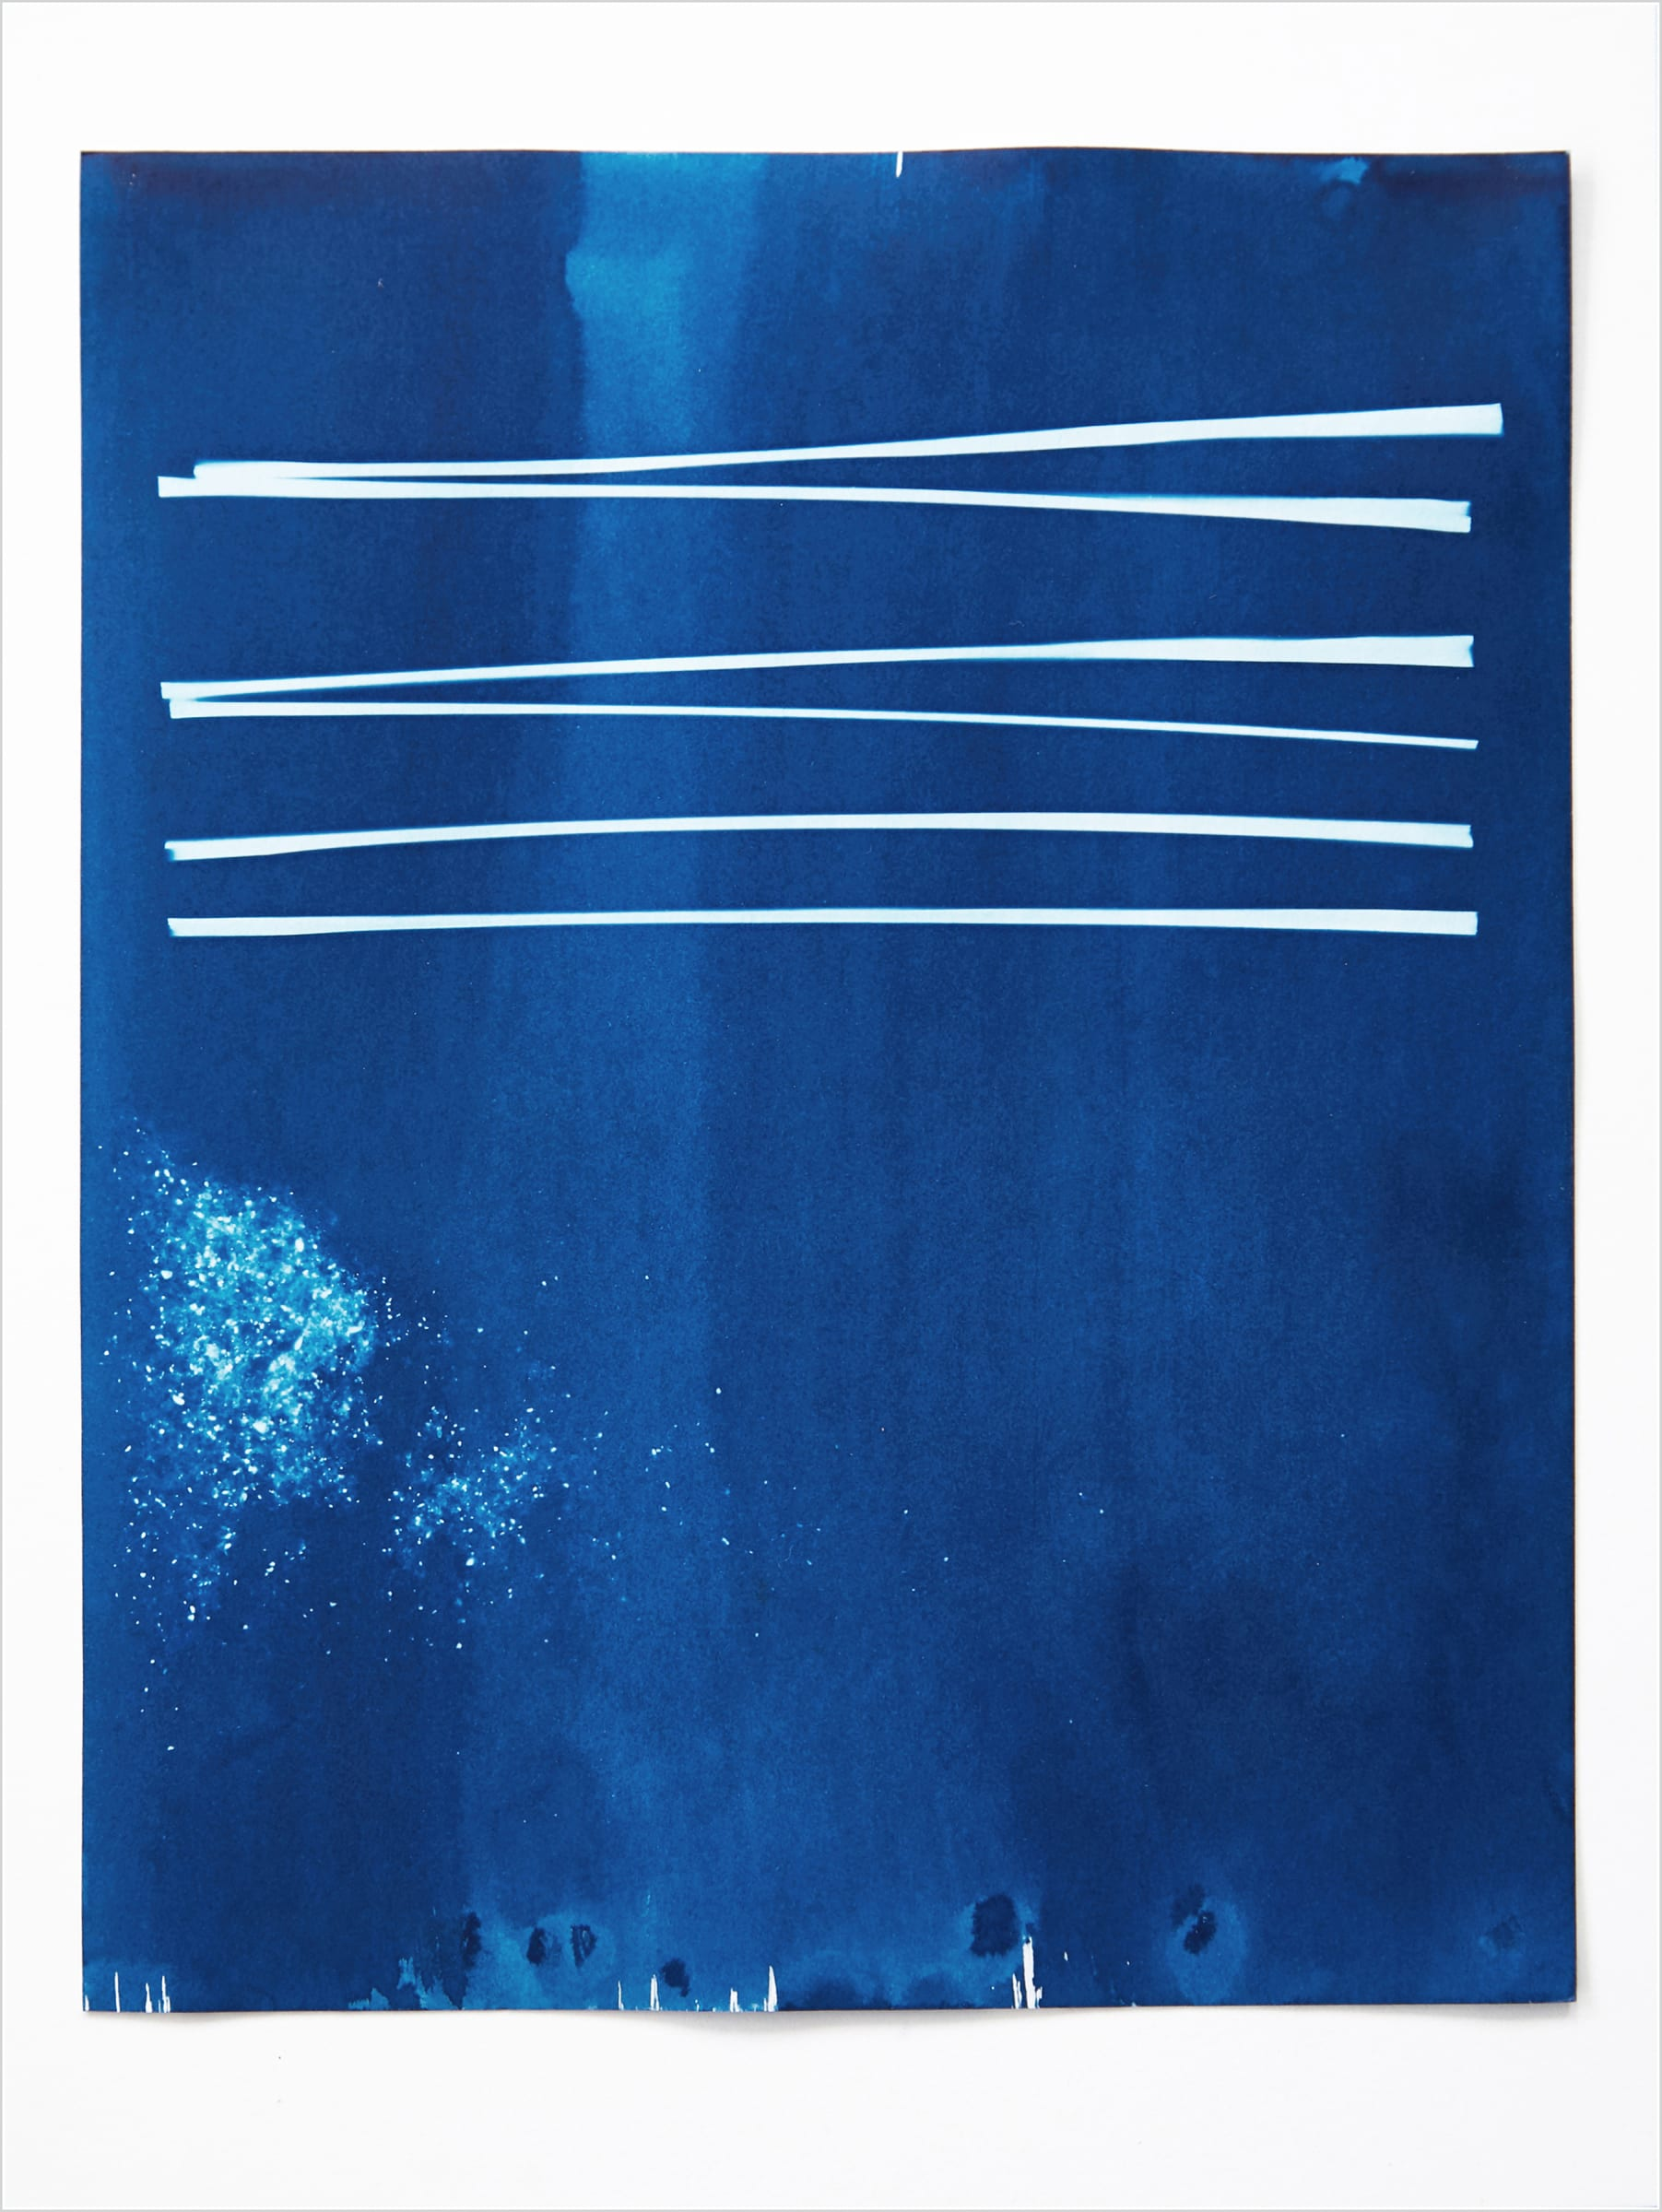 """<span class=""""link fancybox-details-link""""><a href=""""/artists/34-joanne-dugan/works/525-joanne-dugan-dune-shack-cyanotypes-12-2019/"""">View Detail Page</a></span><div class=""""artist""""><strong>Joanne Dugan</strong></div> <div class=""""title""""><em>Dune Shack Cyanotypes, #12</em>, 2019</div> <div class=""""medium"""">Cyanotype</div> <div class=""""dimensions"""">10 x 8 inches</div>"""